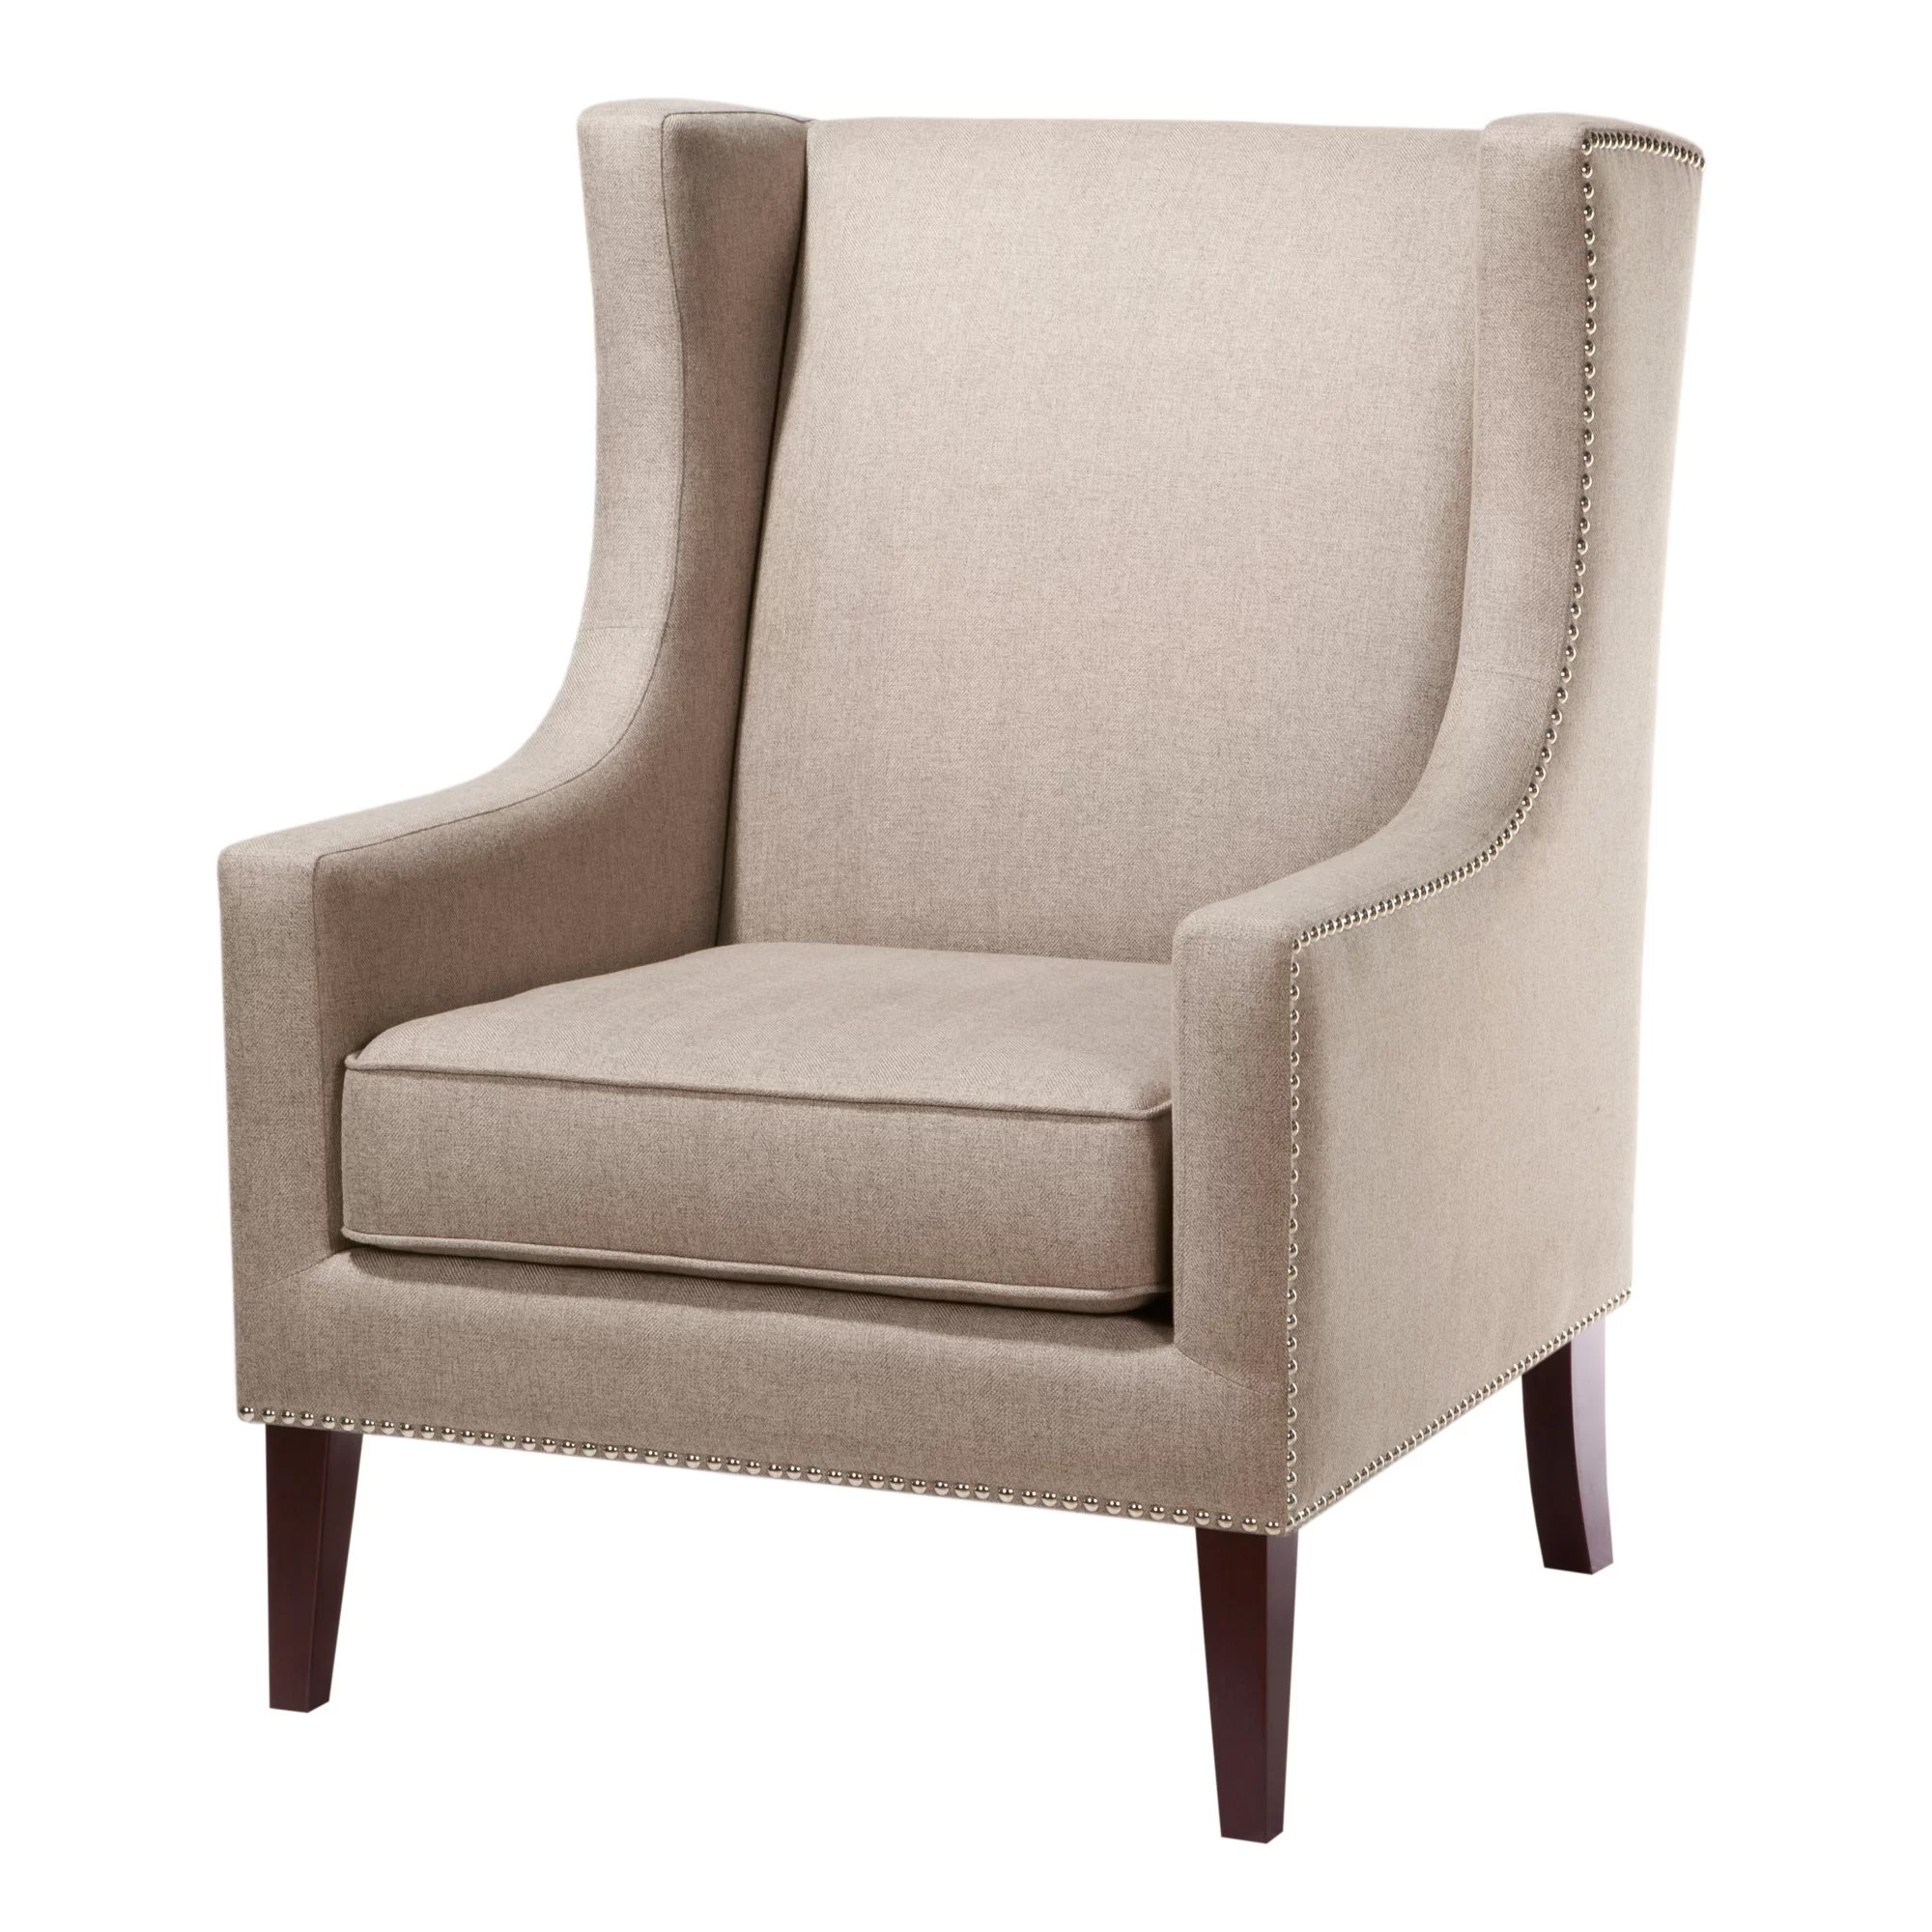 Oversized Reading Chair With Ottoman Accent Chairs Joss Main